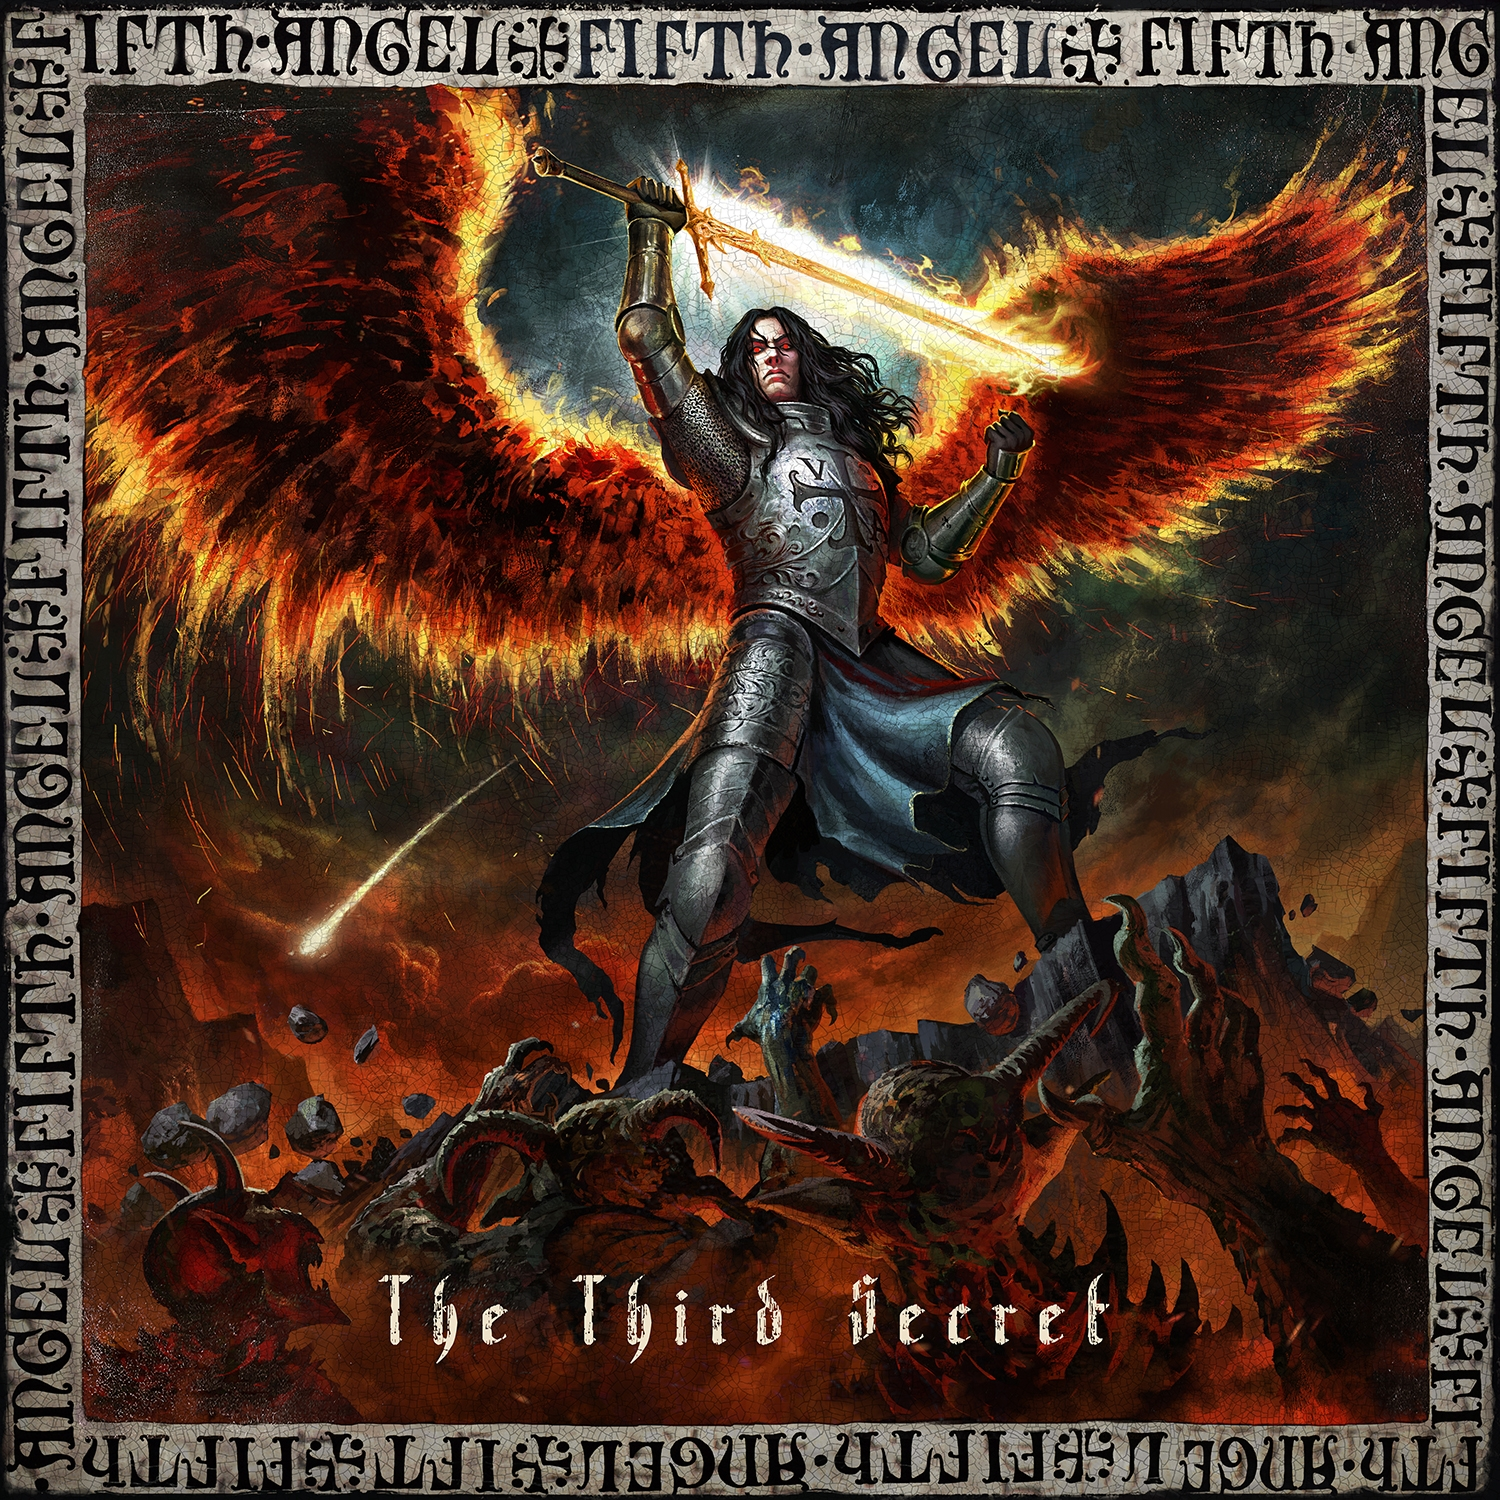 cd-review-fifth-angel-the-third-secret